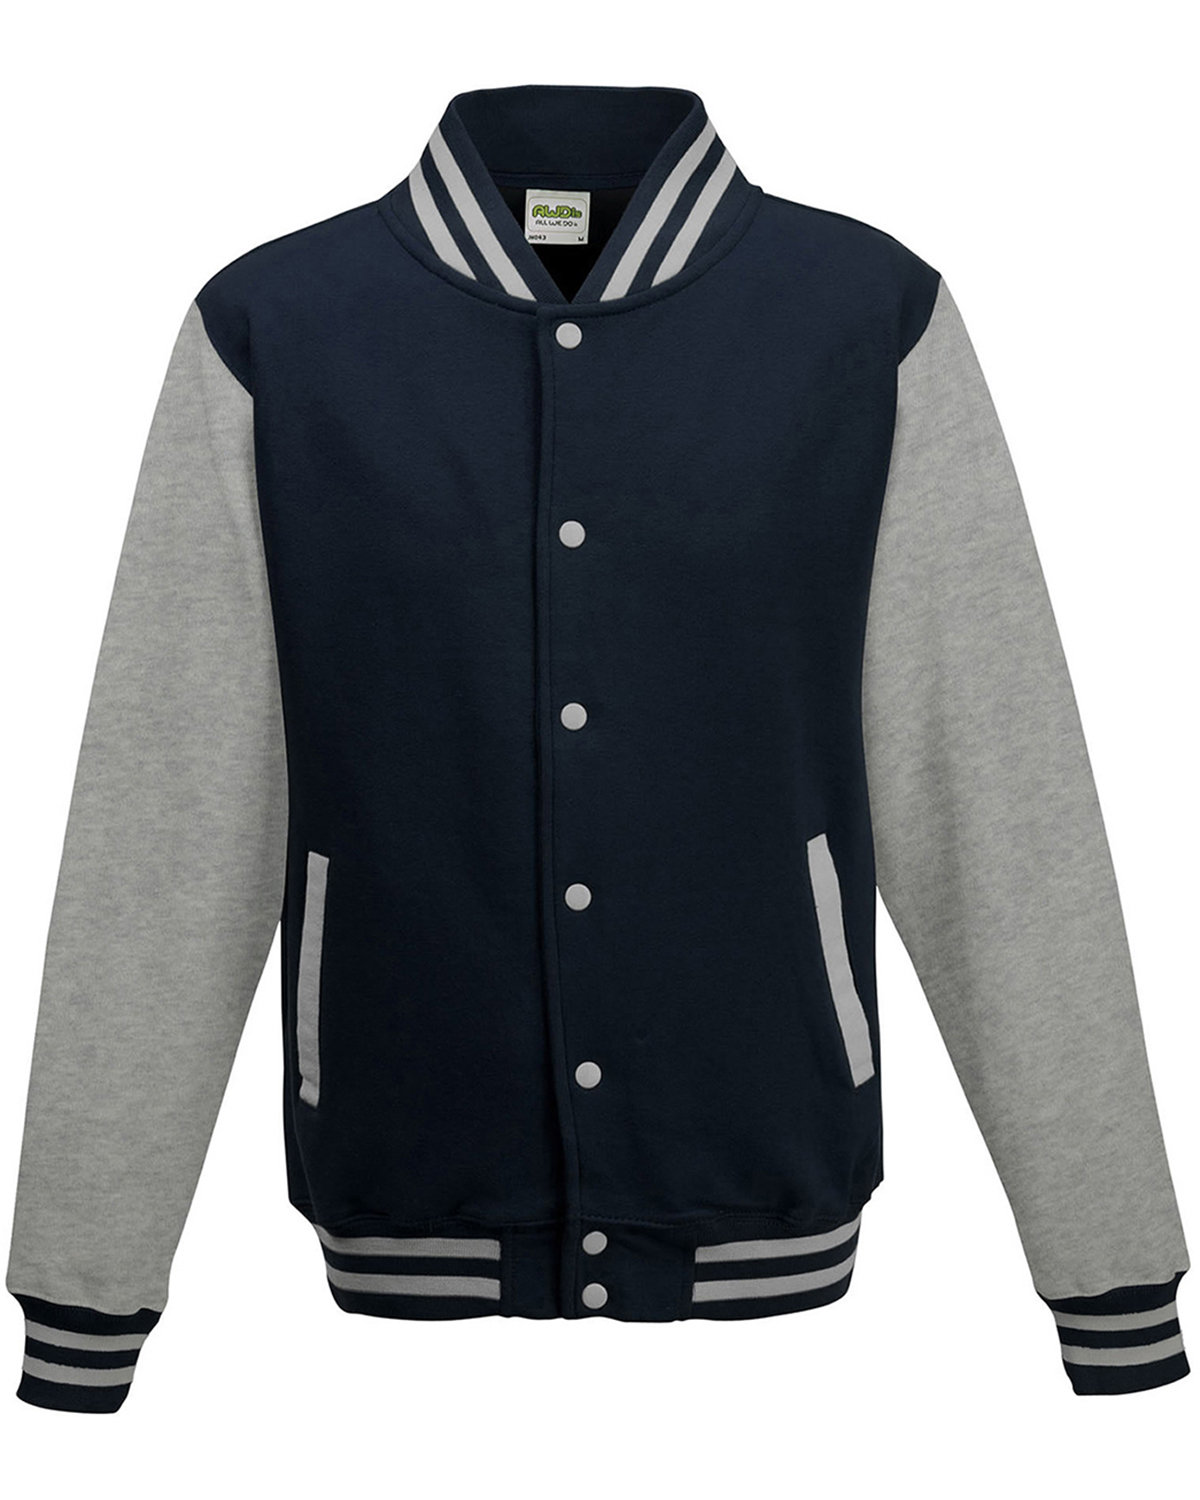 Just Hoods By AWDis Men's 80/20 Heavyweight Letterman Jacket OXF NVY/ HTH GRY